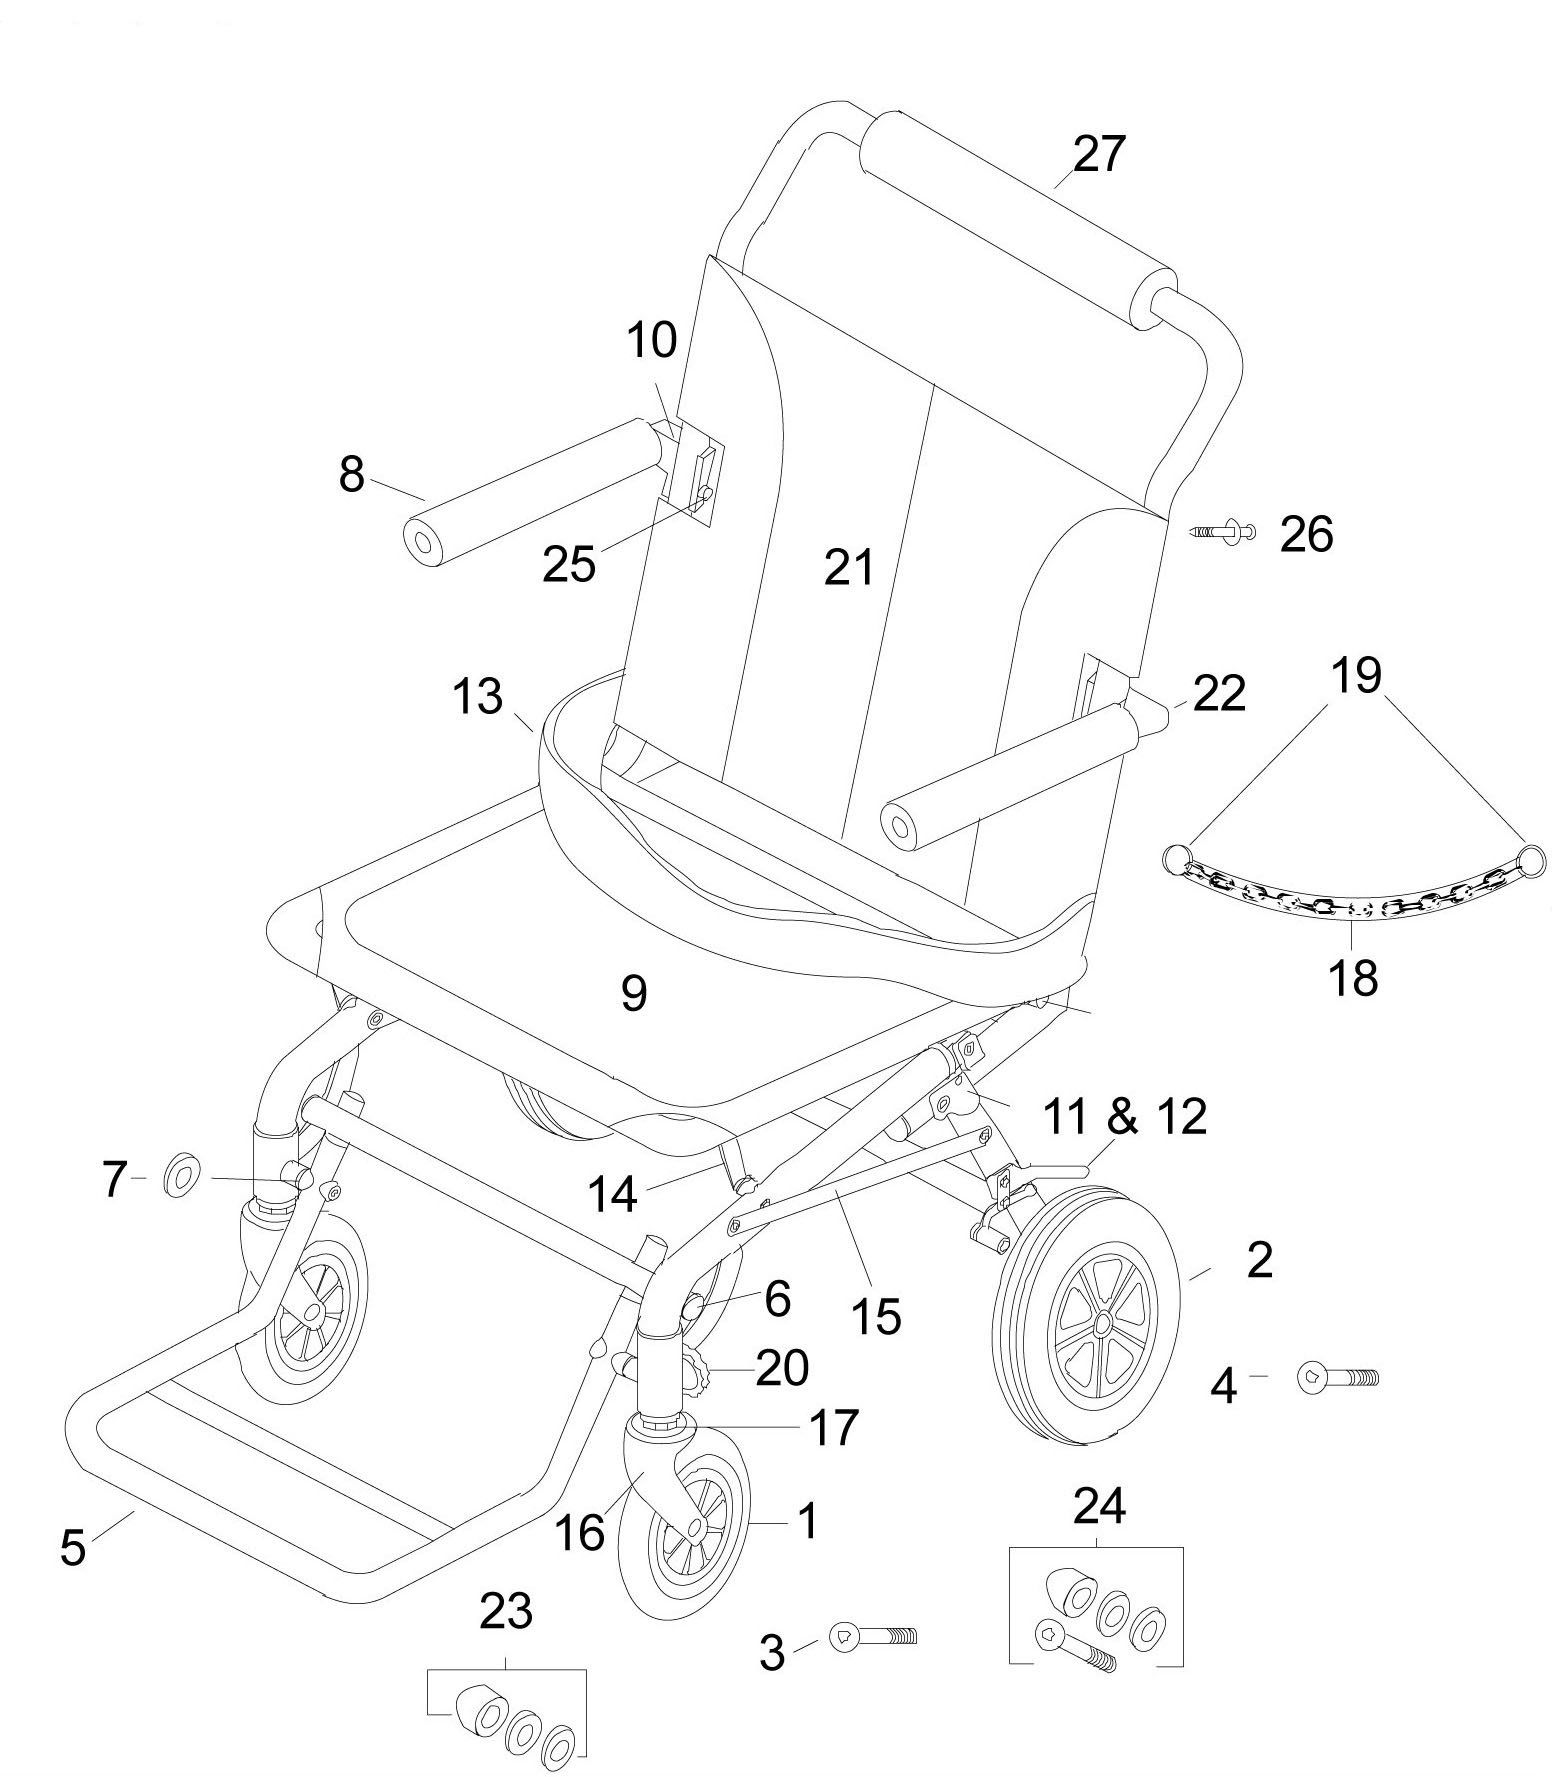 Drive Replacement Parts for SL18 Super Light, Folding Transport Chair with Carry Bag and Flip-Back Arms (Rear Caster)